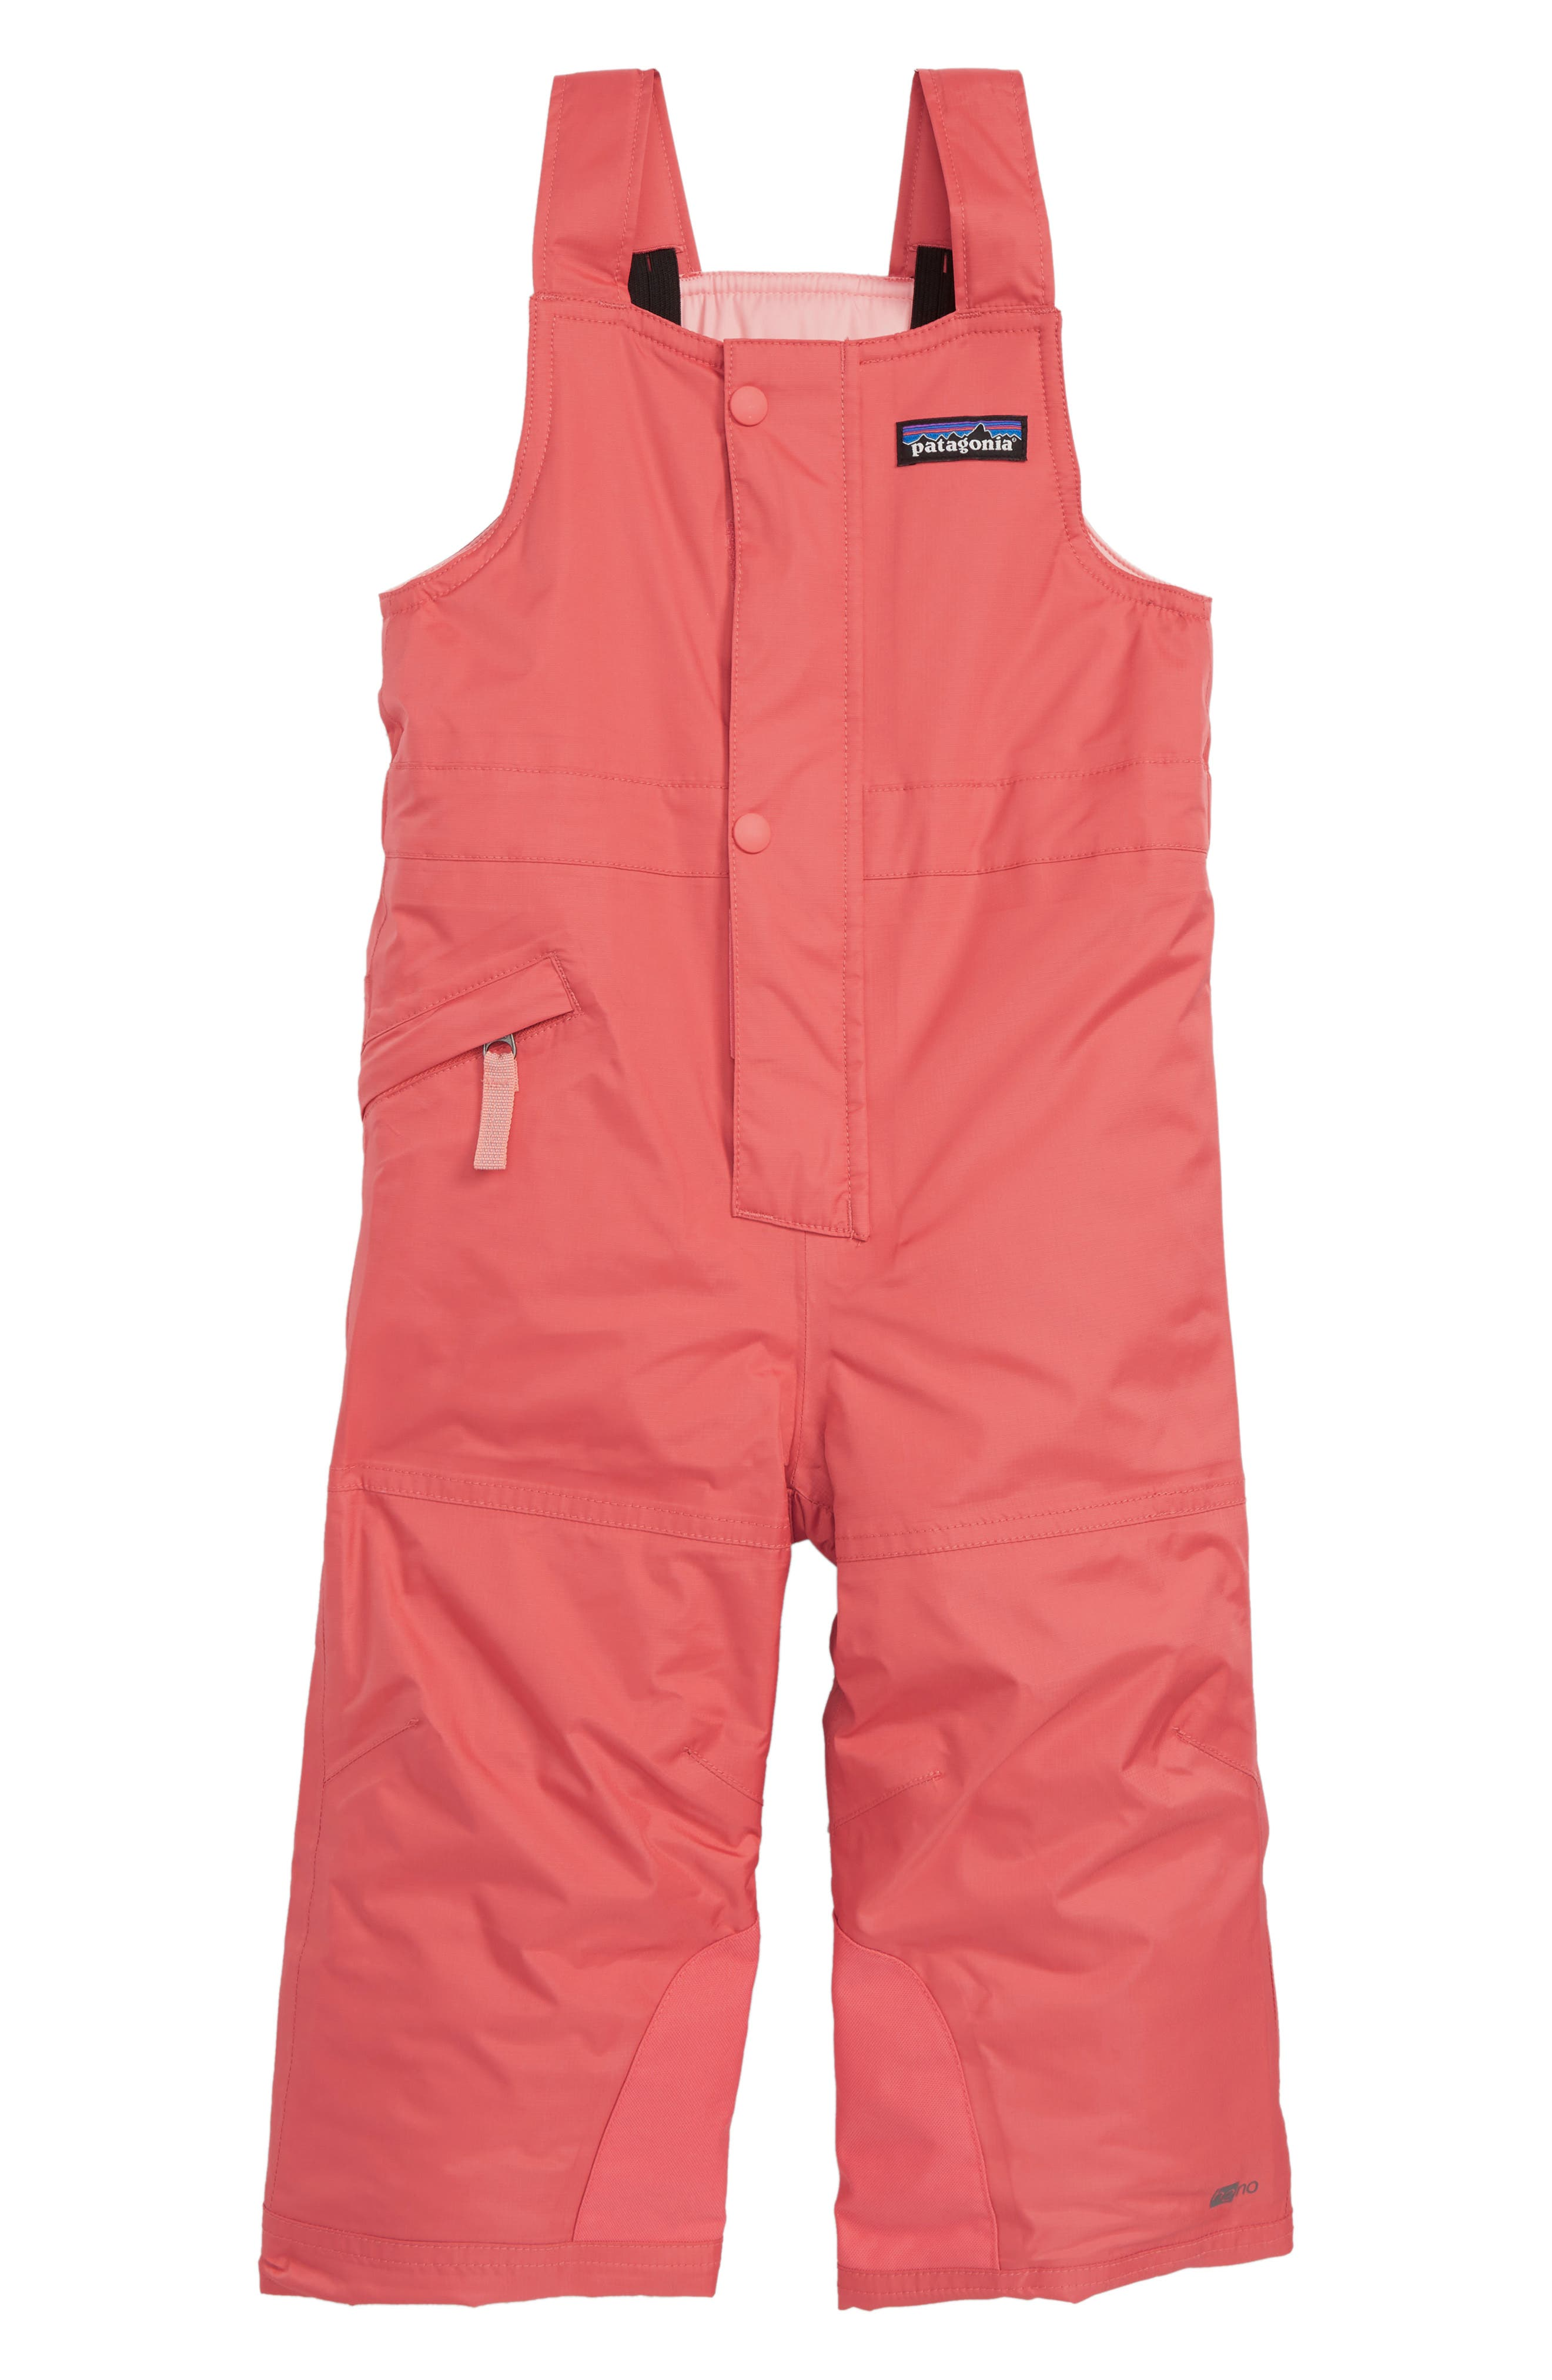 Snow Pile Waterproof Insulated Bib Overalls,                         Main,                         color, SPCL SPICED CORAL